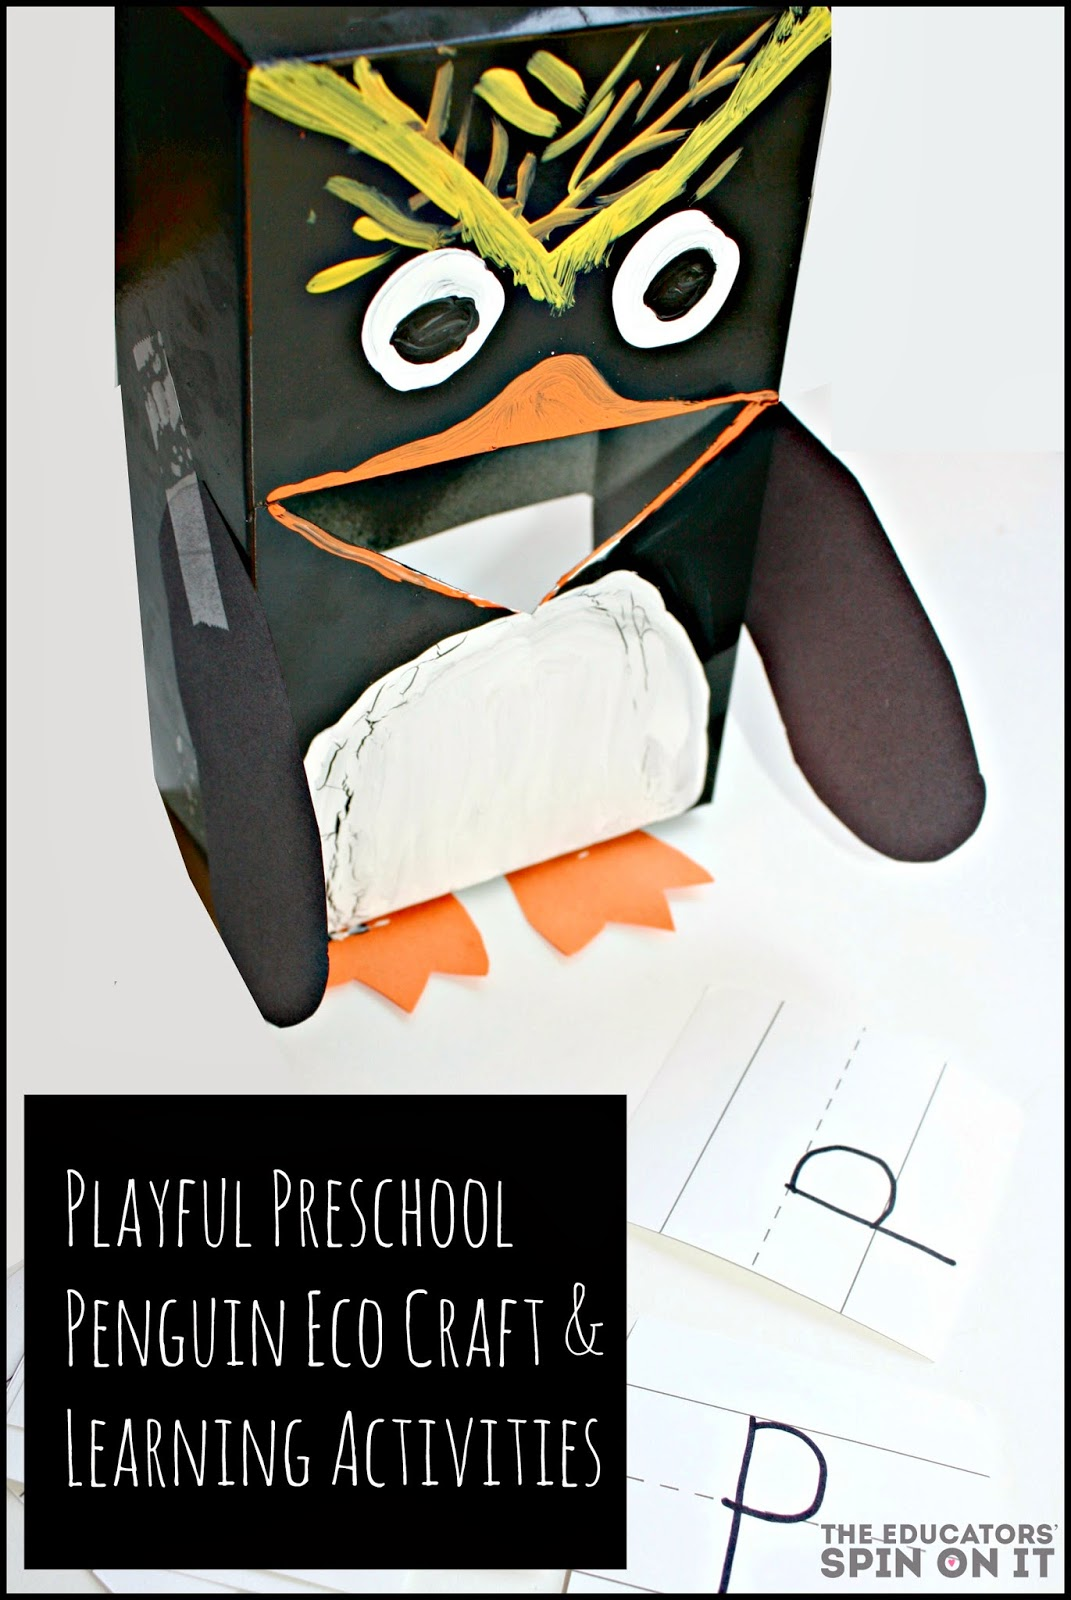 The Educators Spin On It Preschool Penguin Learning Activities And Eco Craft